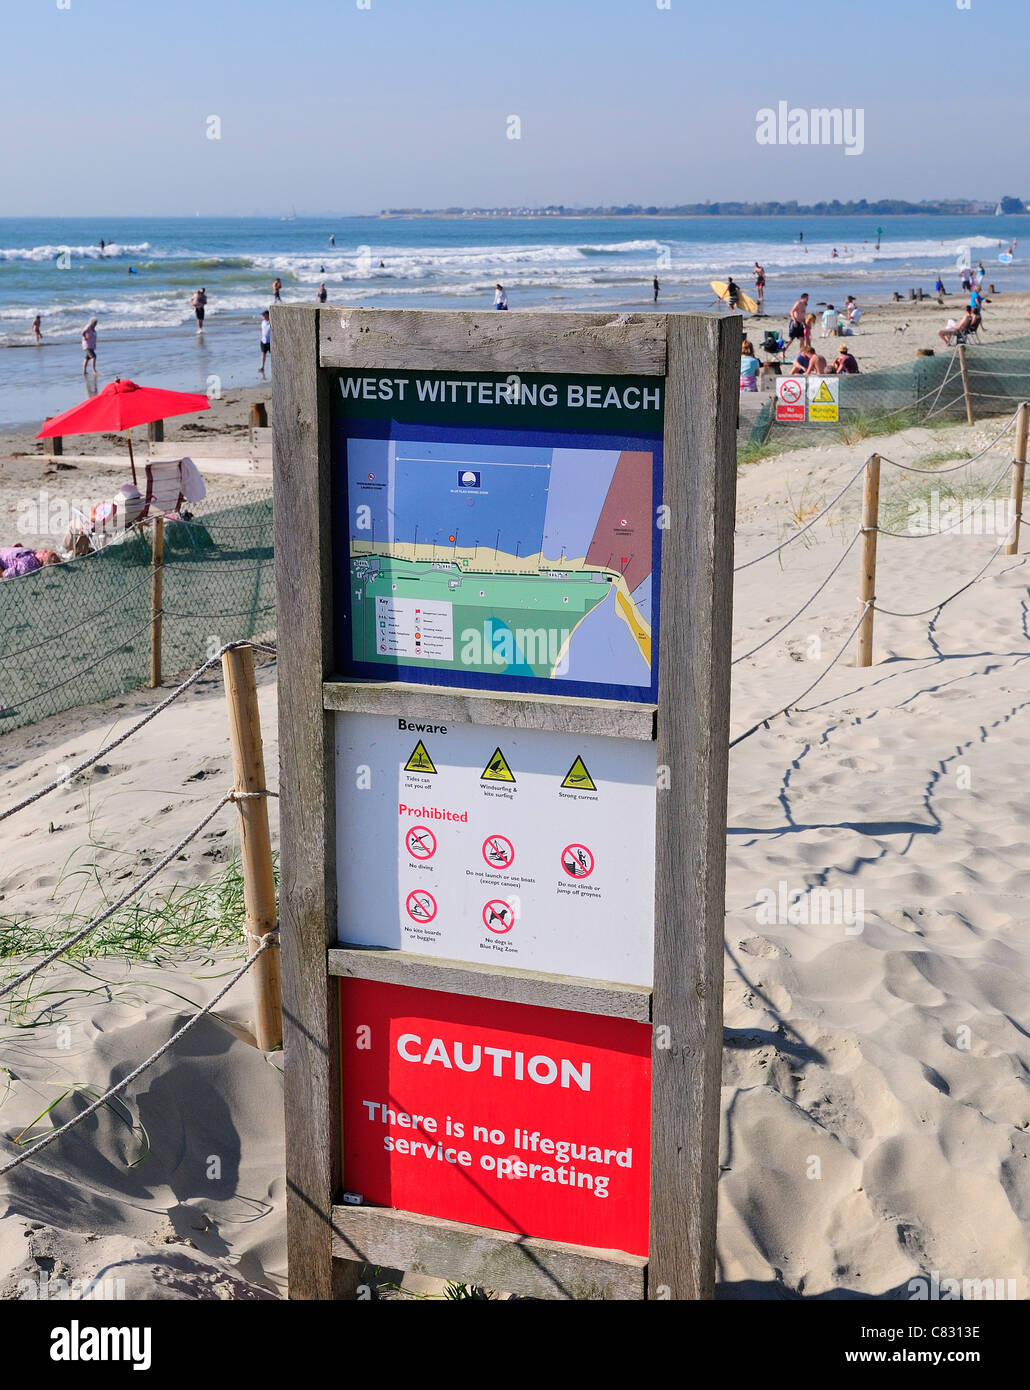 West Wittering Beach rules and regulation sign - Stock Image